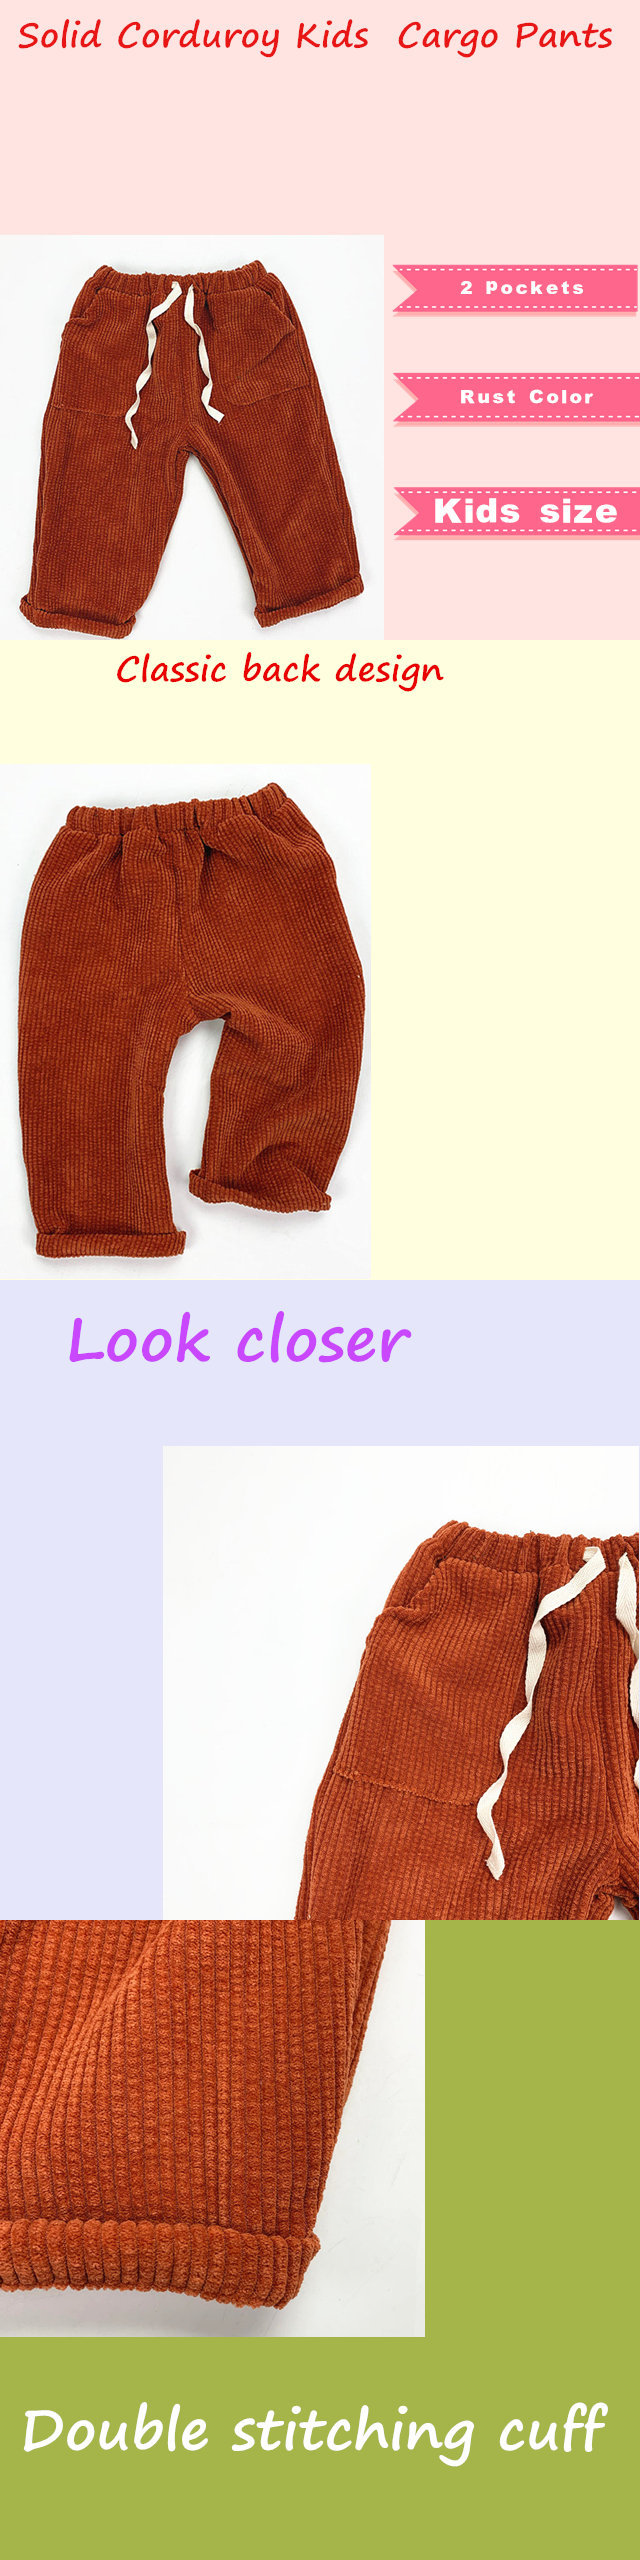 Vintage Rust Color Kids Clothes Customize Logo 1 year old Corduroy Cargo Pants Daily Fashion